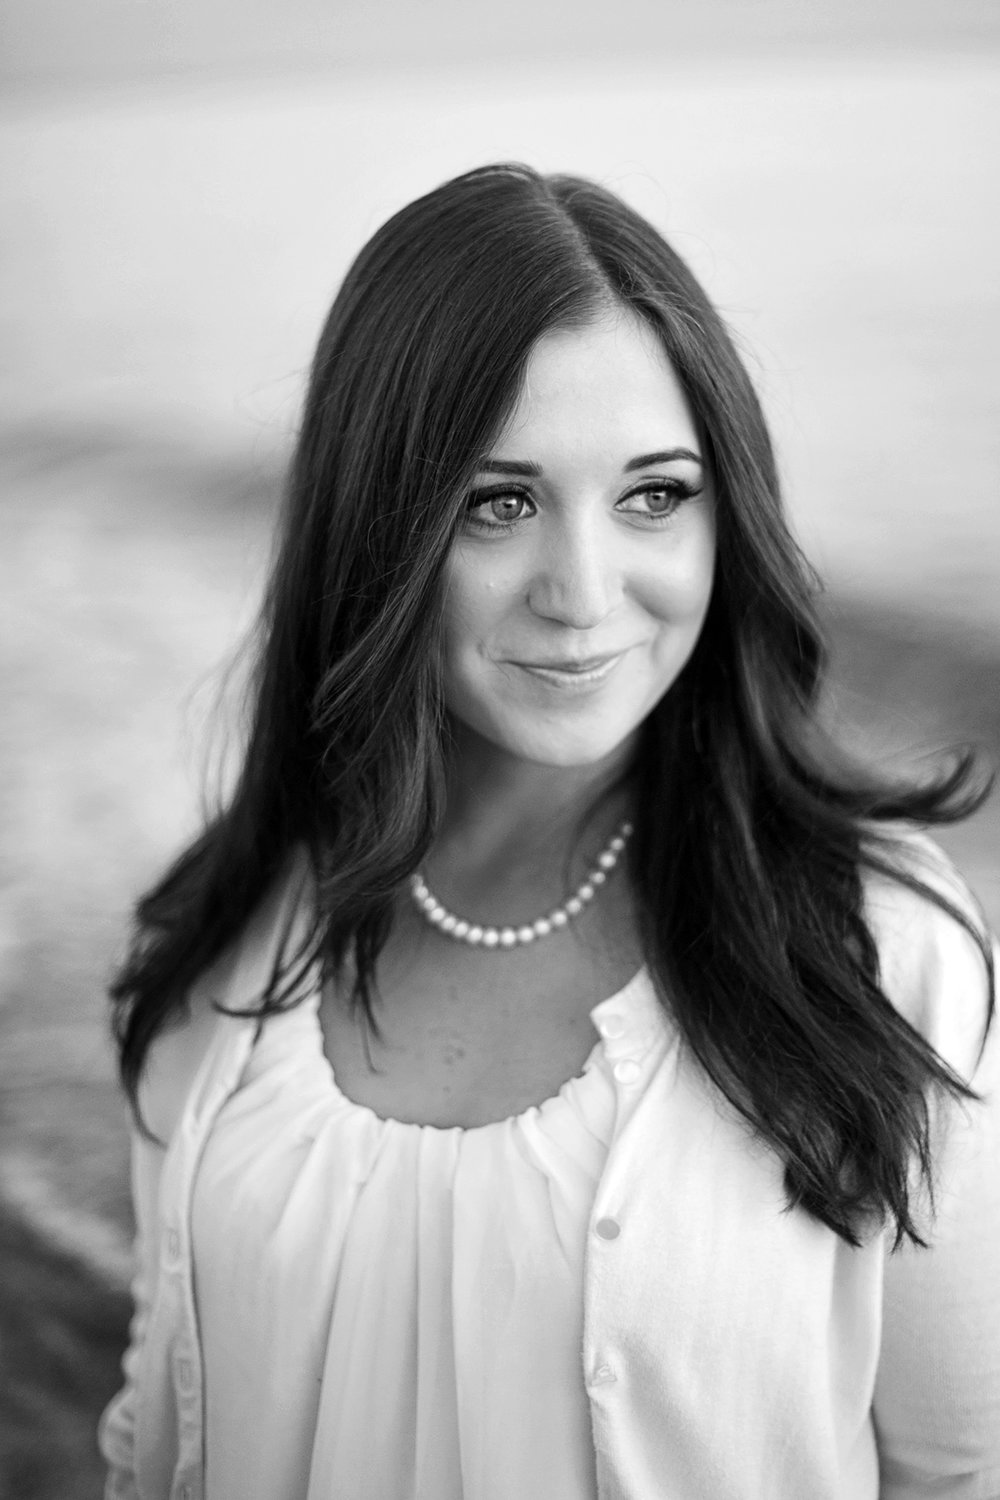 Founding Editor of The Fount Collective, Tiffany Farley